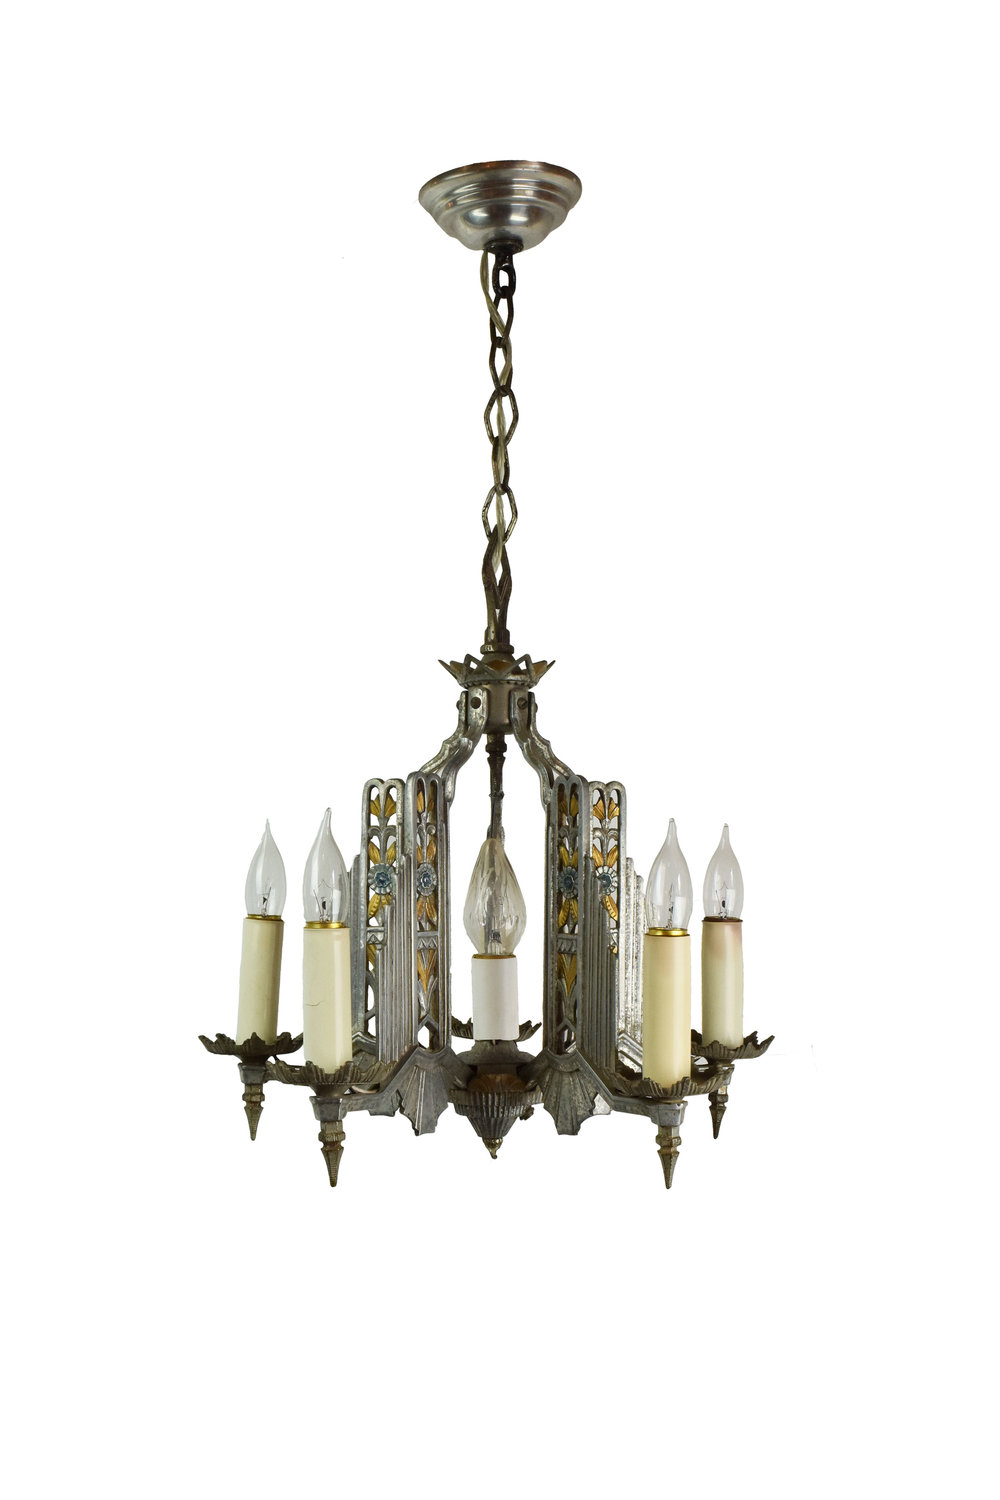 Architectural Antique's Cast Aluminum Deco Chandelier